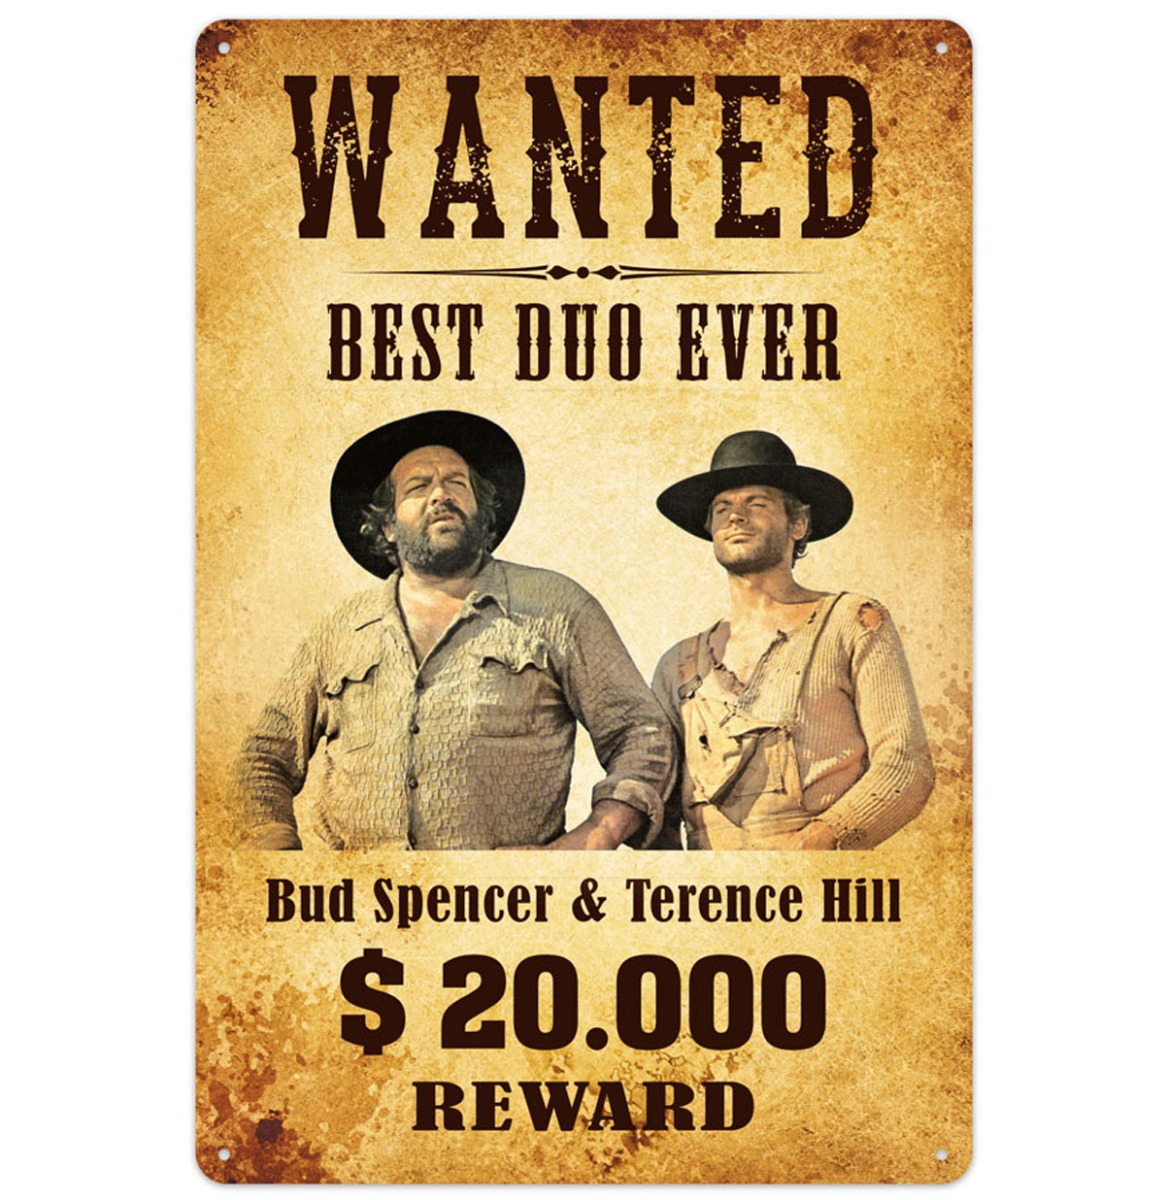 Bud Spencer Terence Hill Best Duo Ever Reward 20.000 Metalen Bord 30 x 40 cm